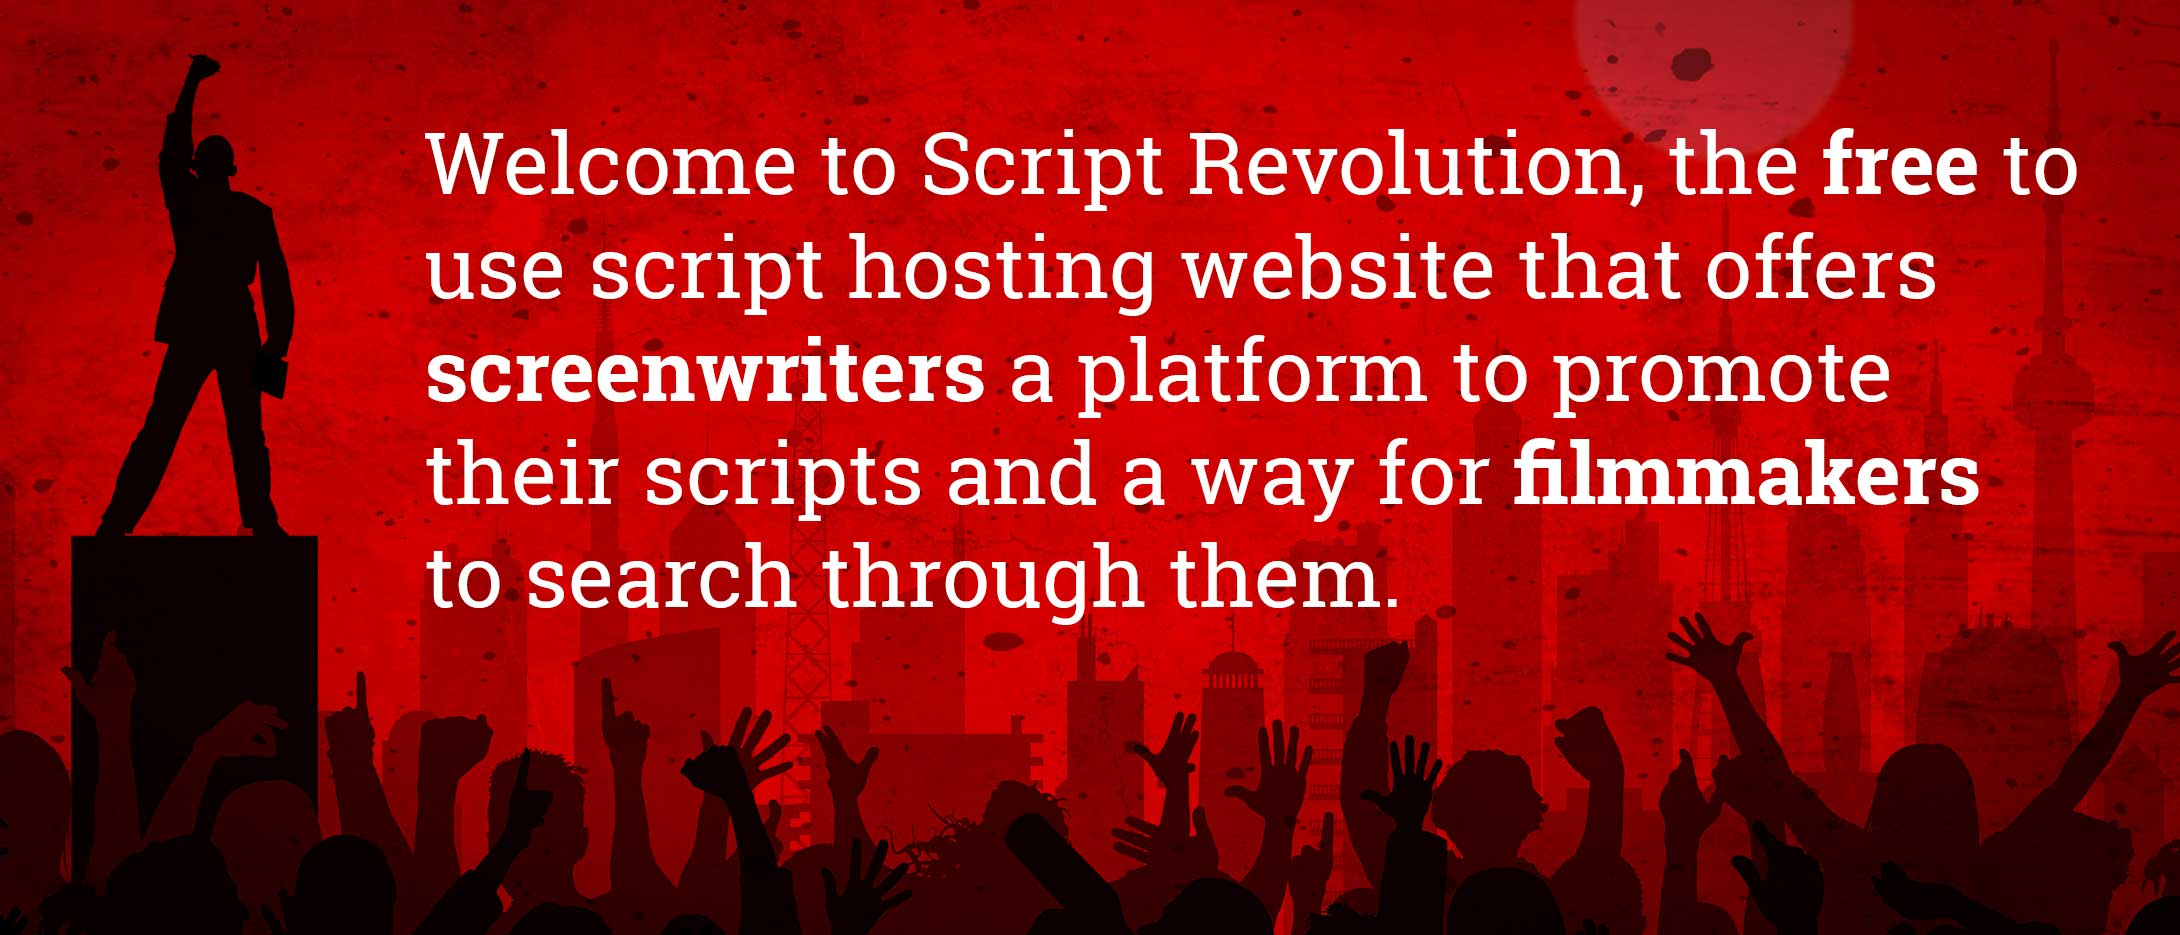 Welcome To Script Revolution